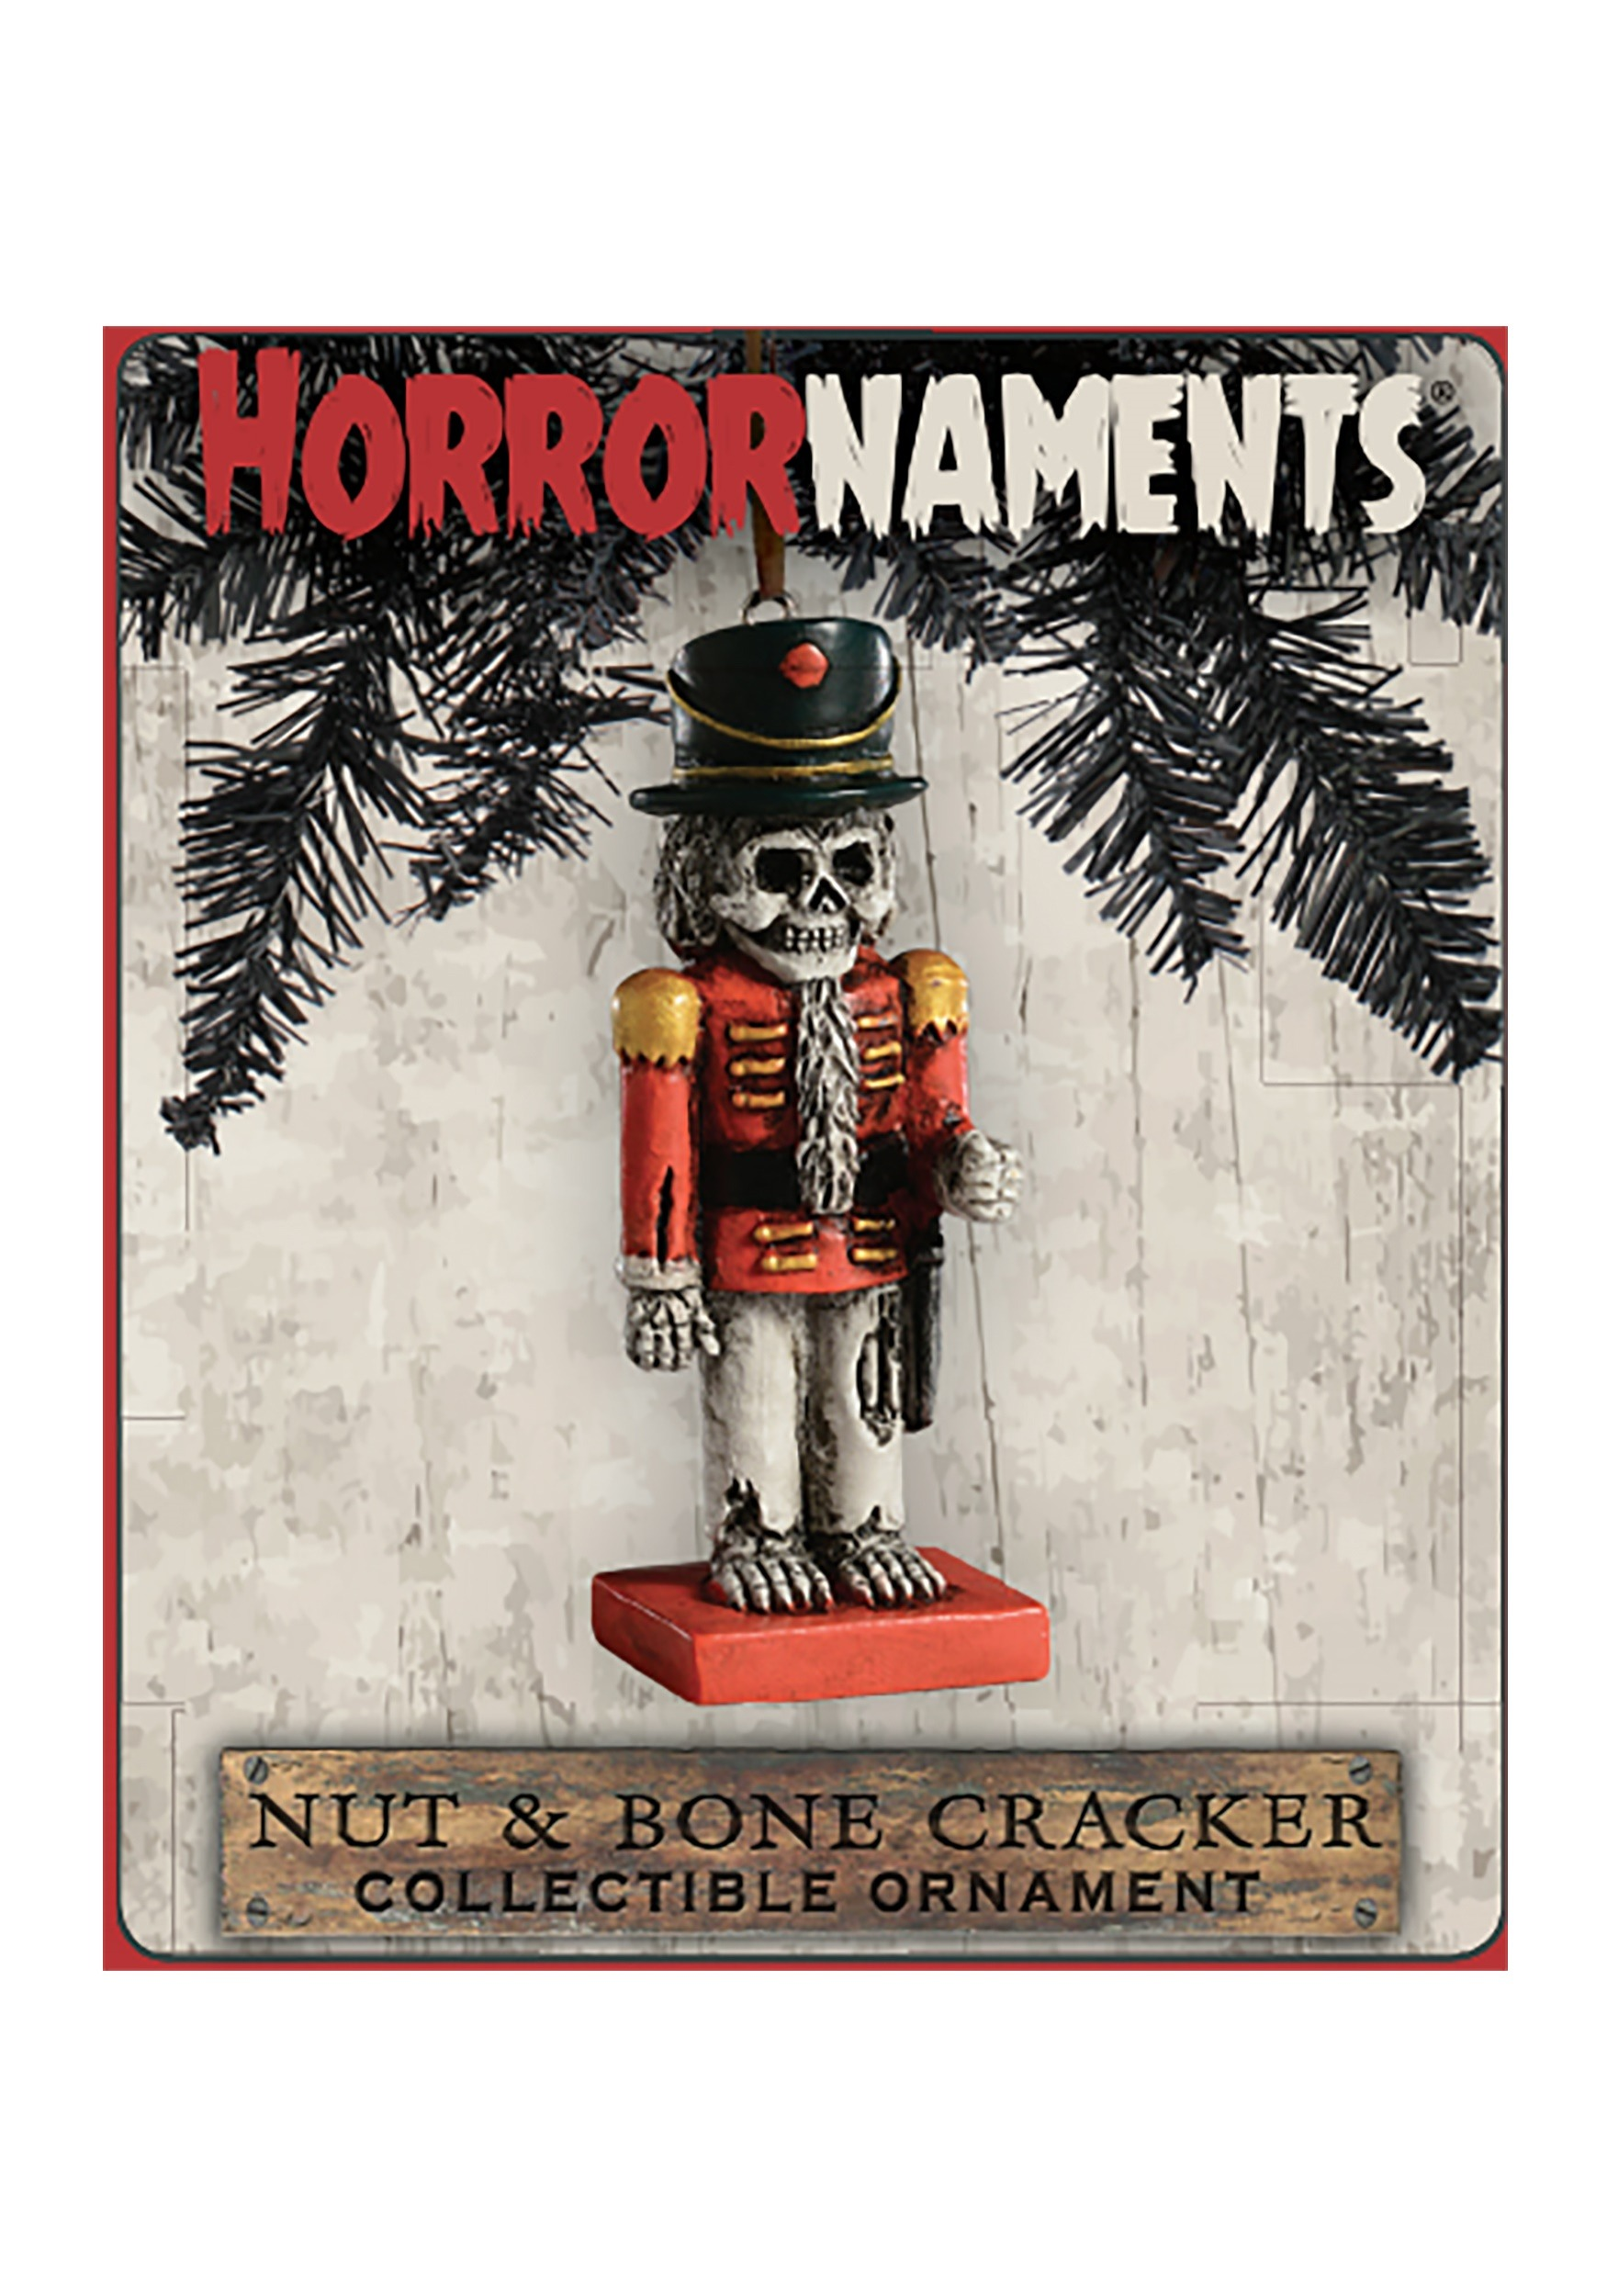 Horrornaments Nut And Bone Cracker Molded Ornament